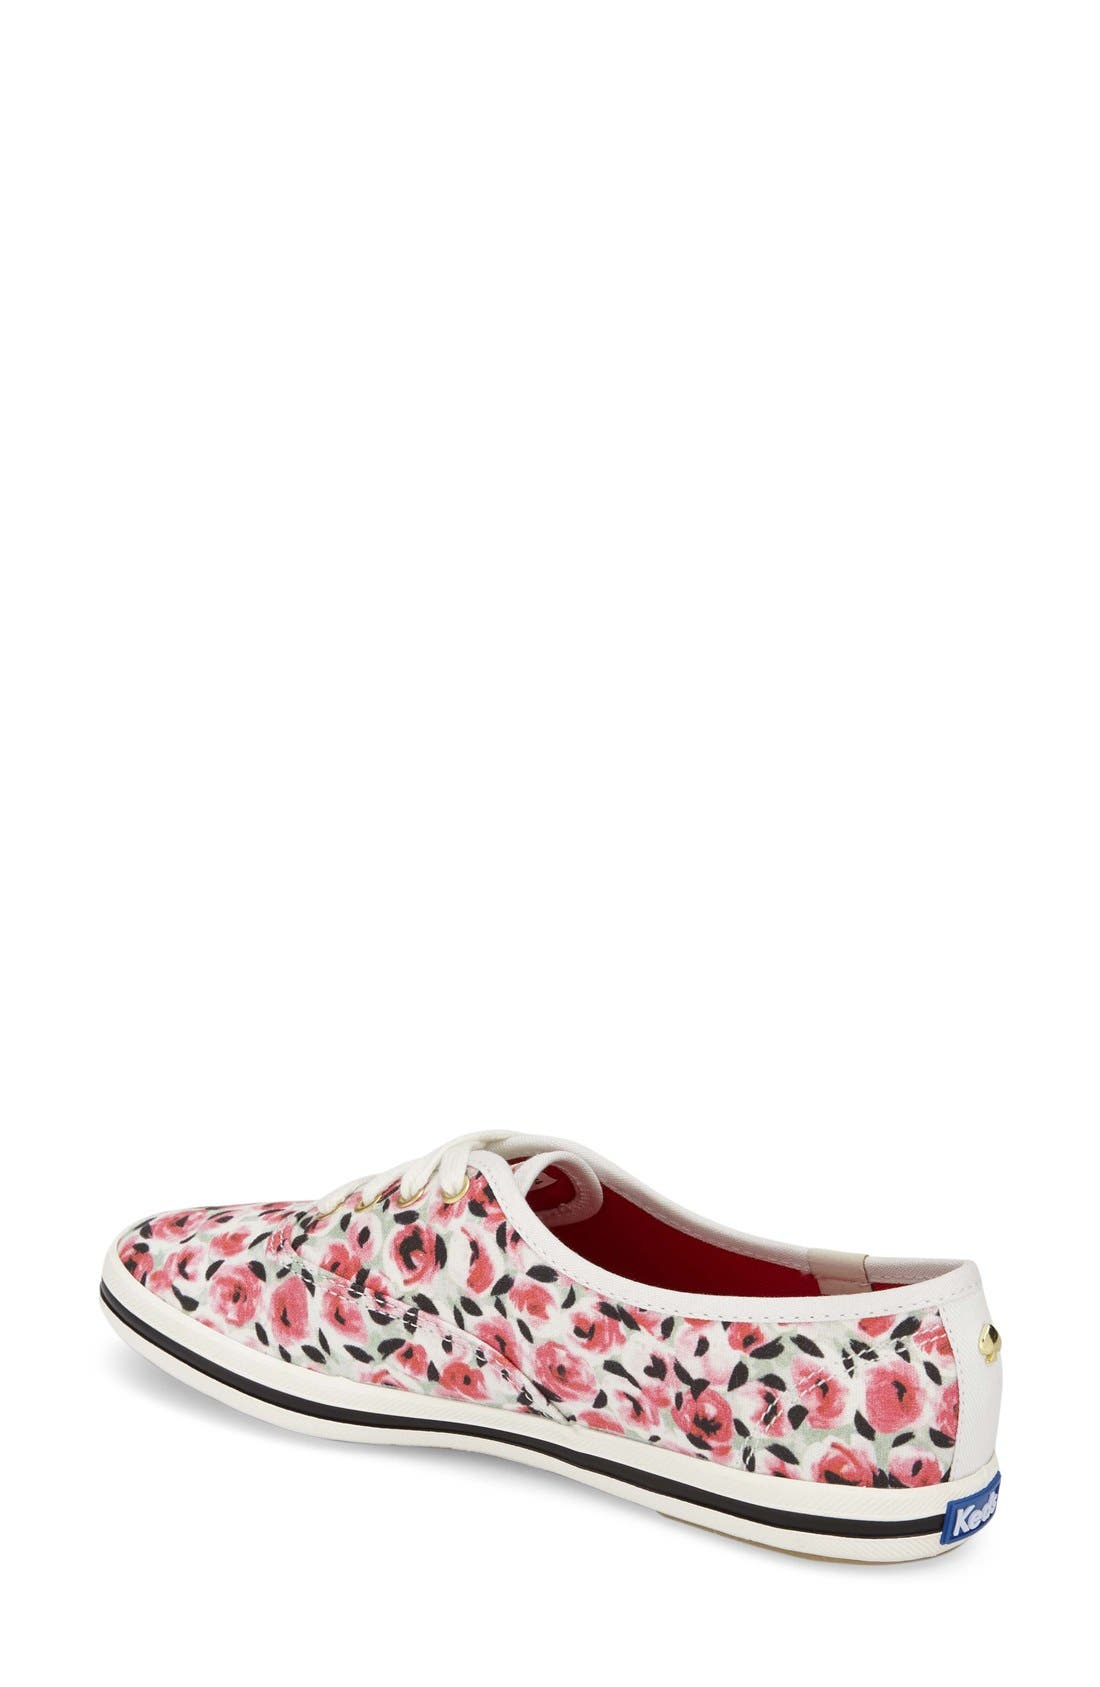 Alternate Image 2  - Keds® for kate spade new york 'kick' print sneaker (Women)